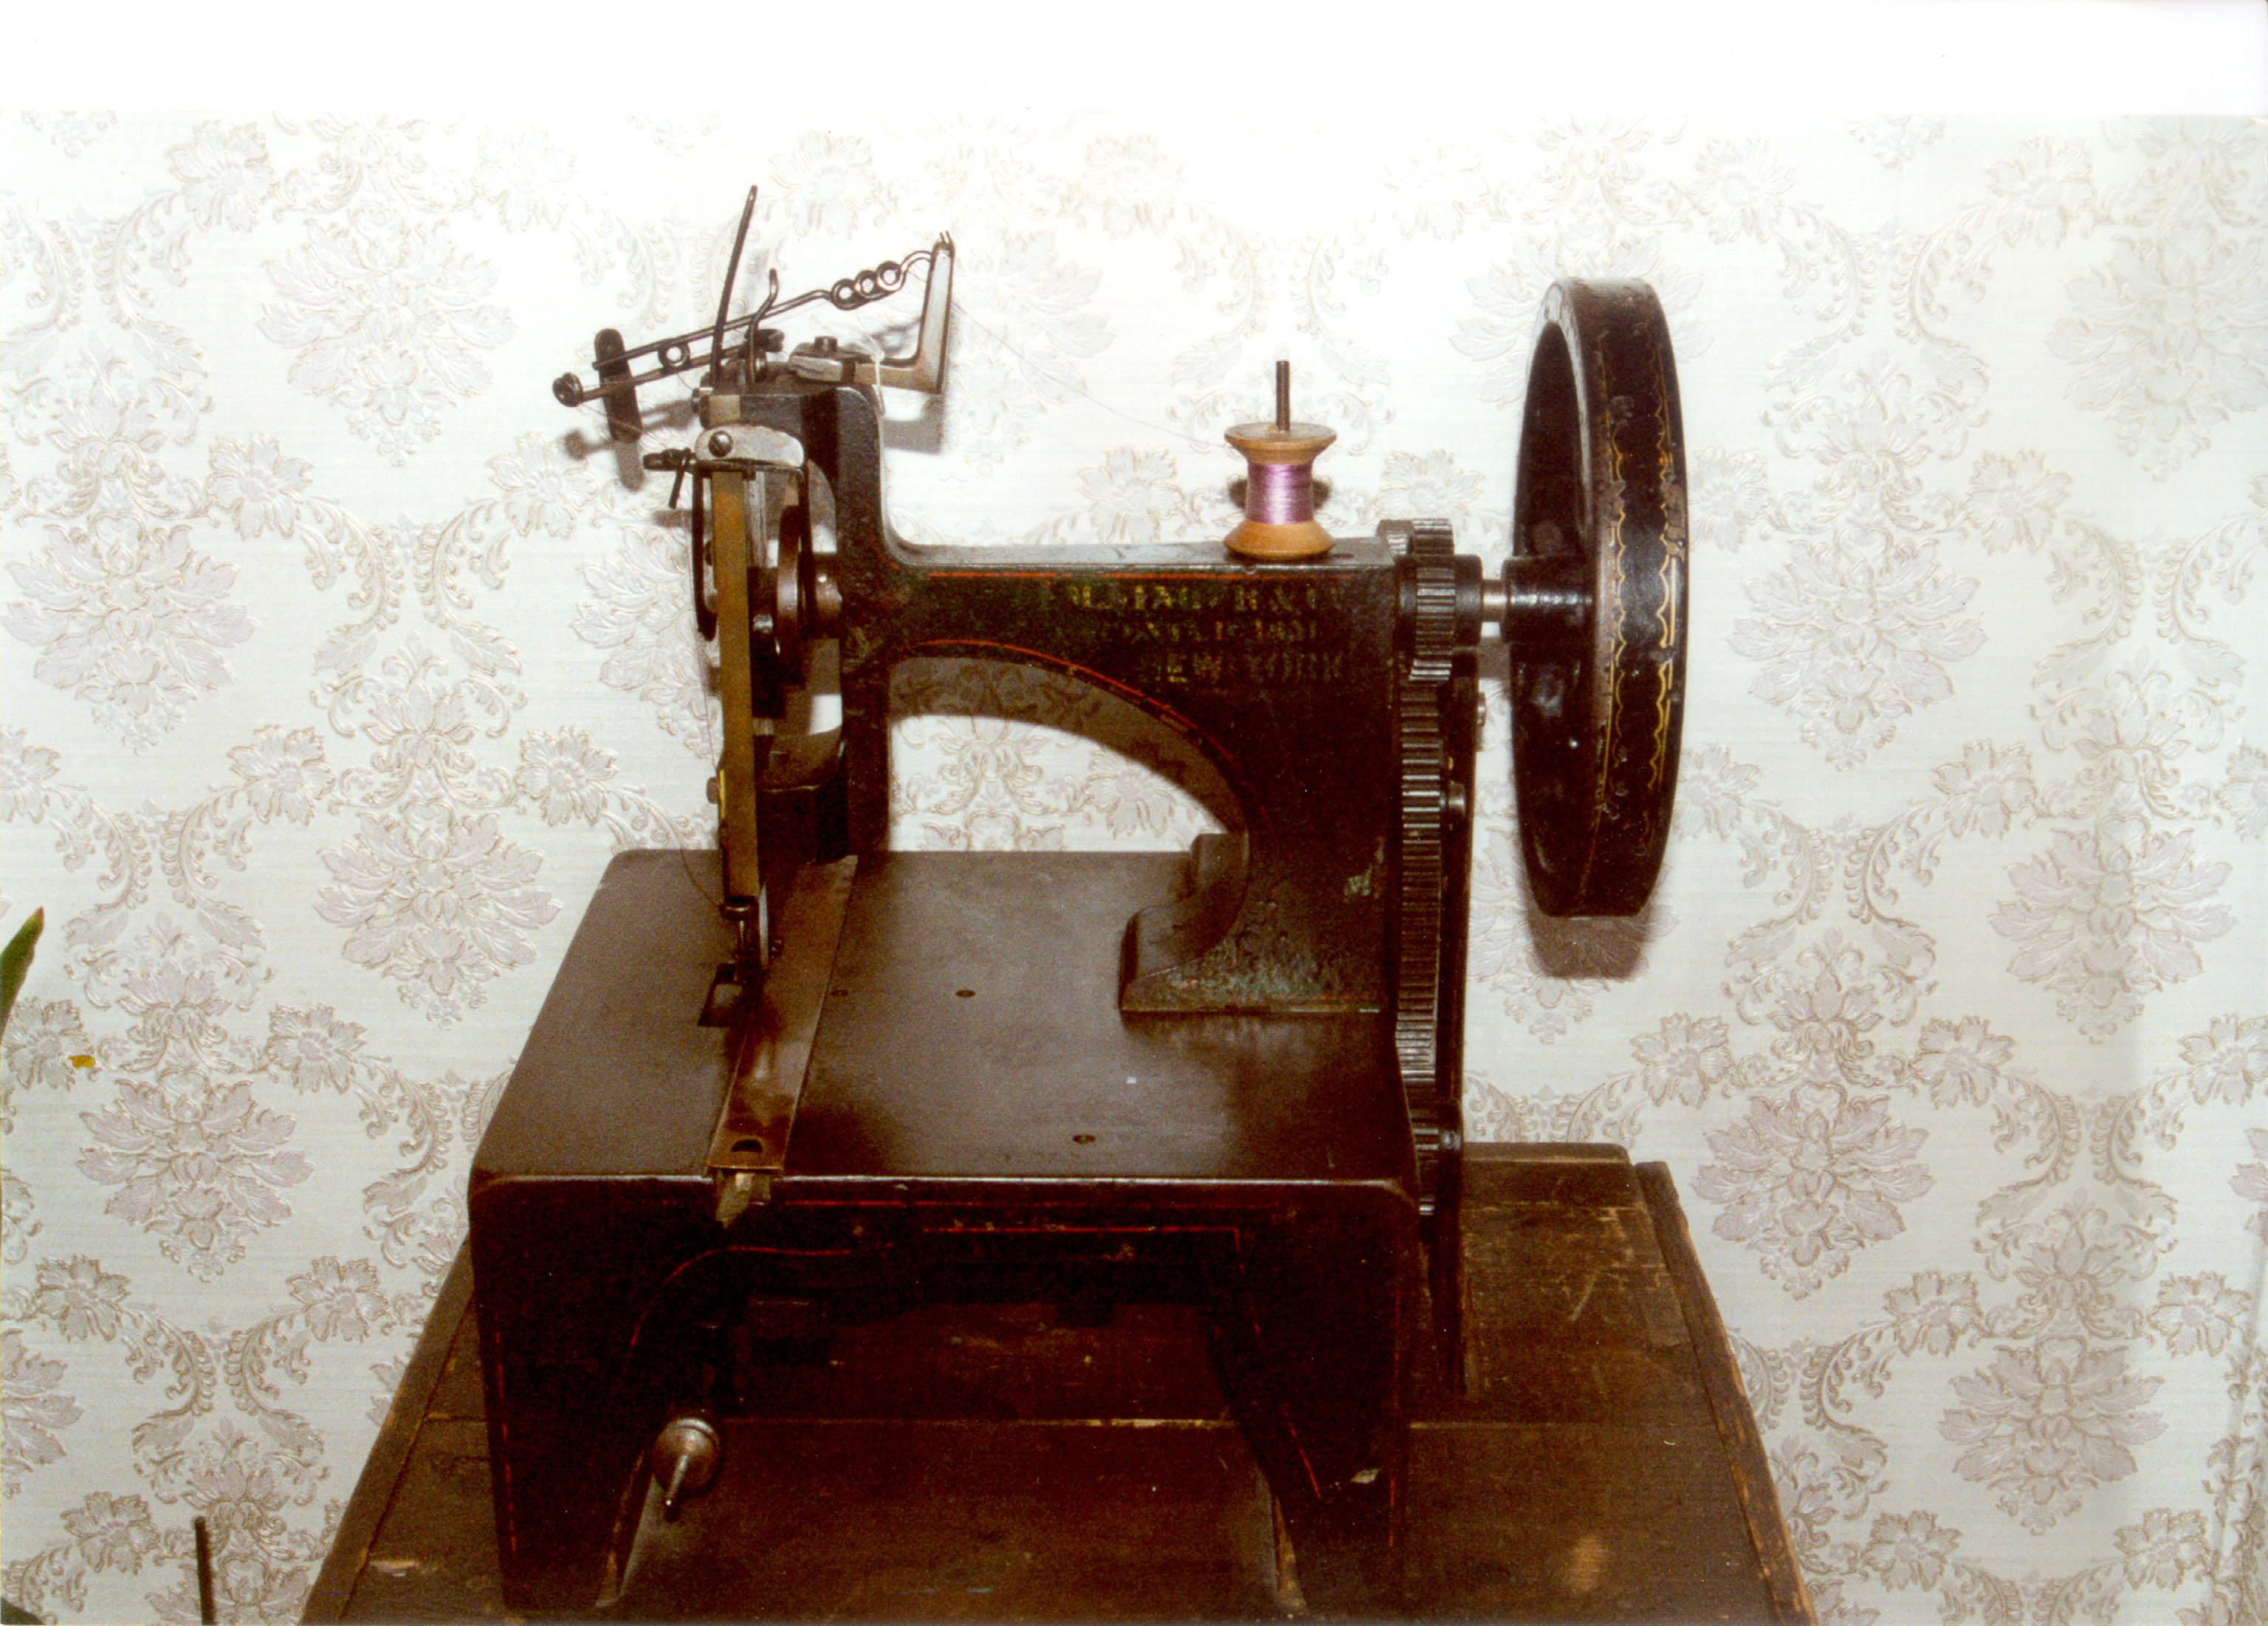 perpendicular action sewing machine manufactured by the Singer Company for use mainly in factories